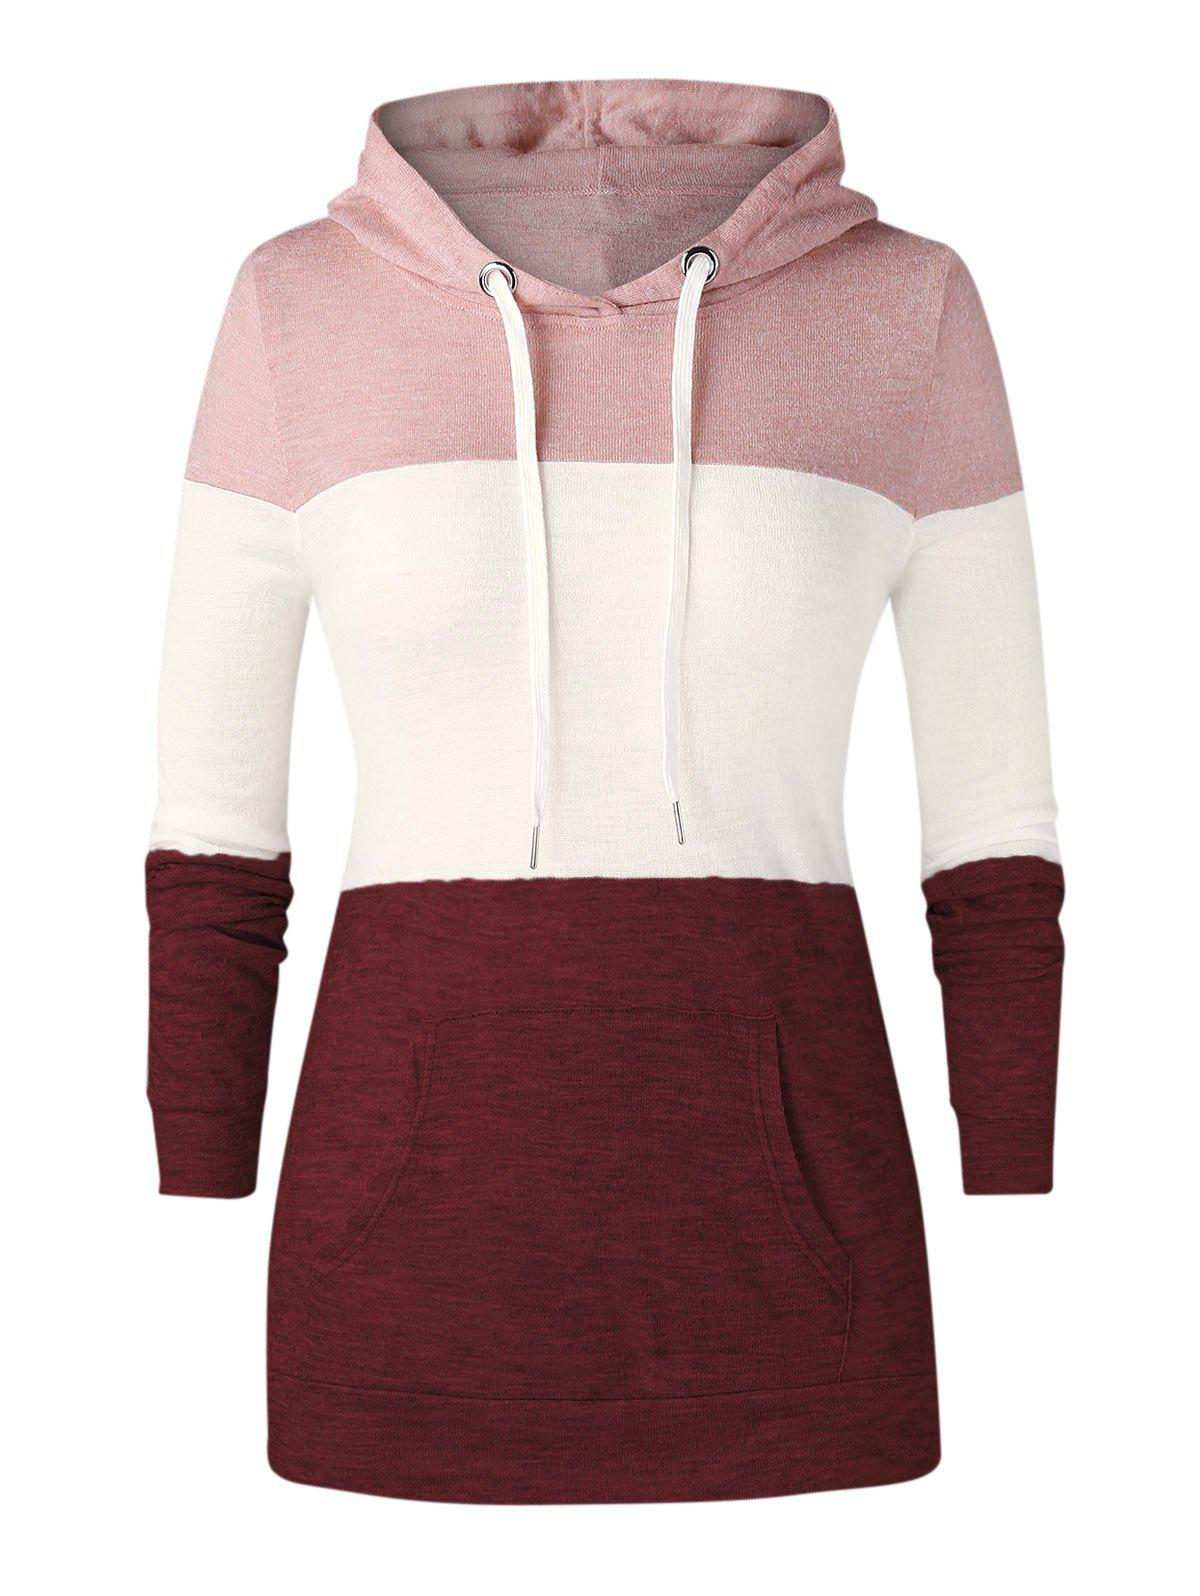 Trendy Plus Size Color-blocking Kangaroo Pocket Drawstring Knit Hoodie